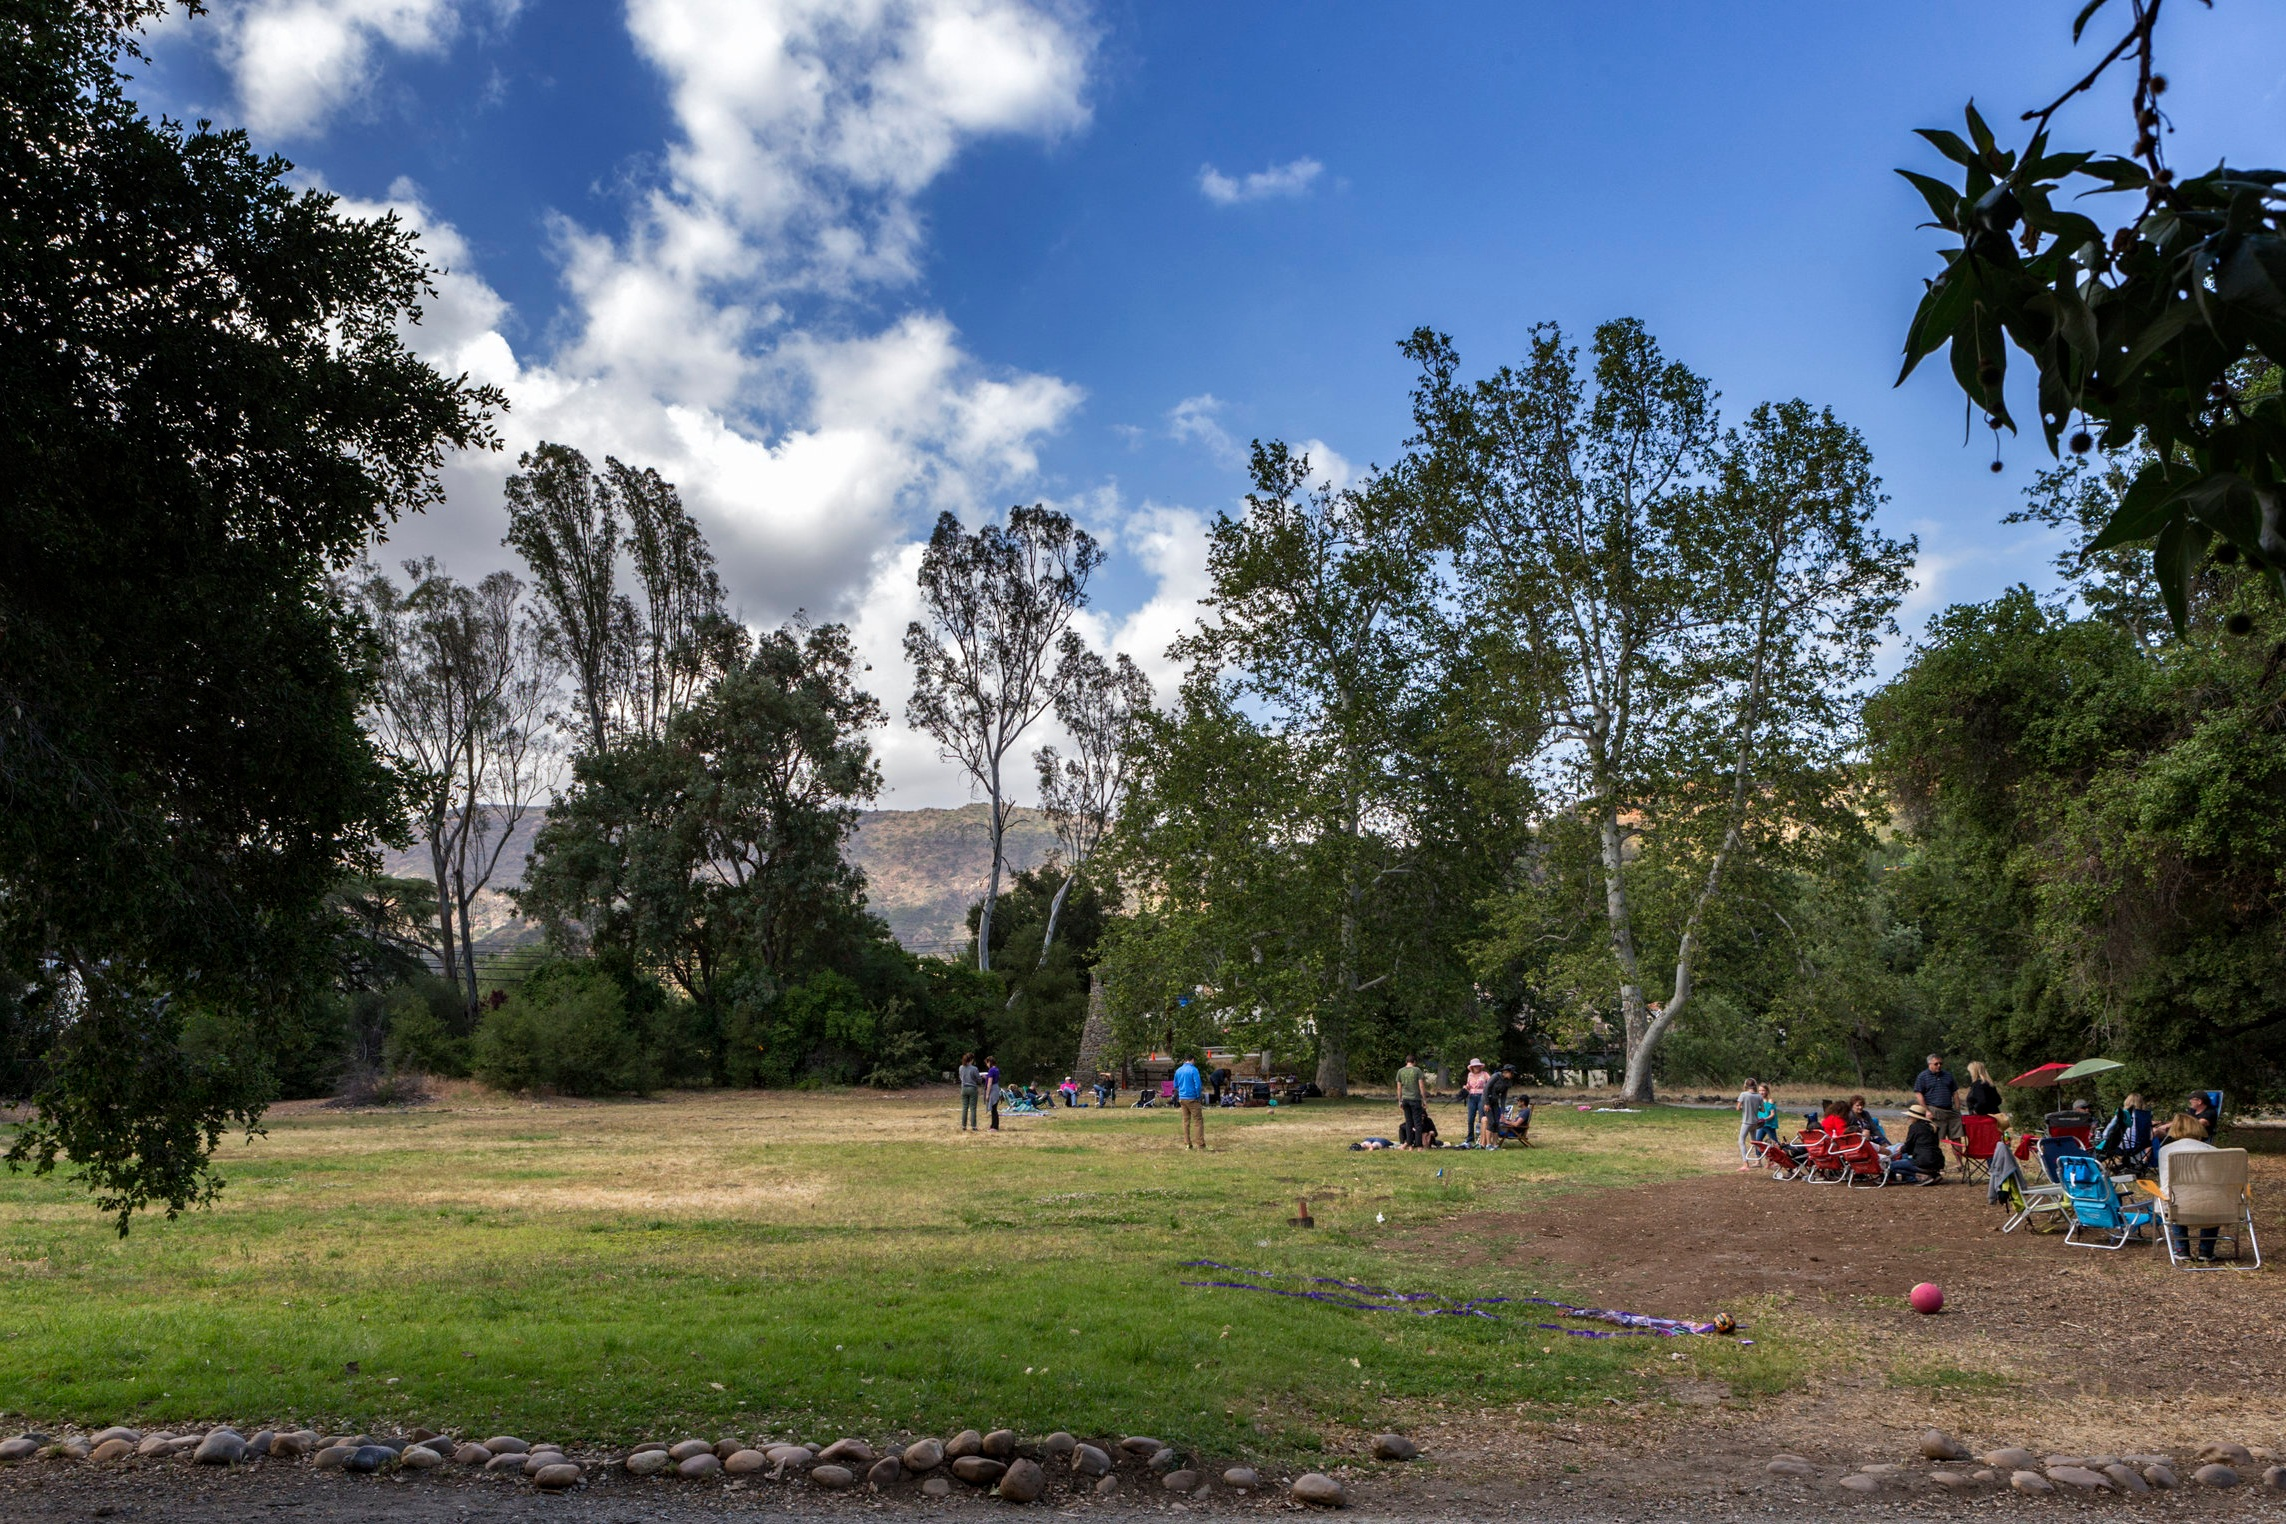 The lawn at Peter Strauss Ranch. The perfect spot for a pre-show picnic.